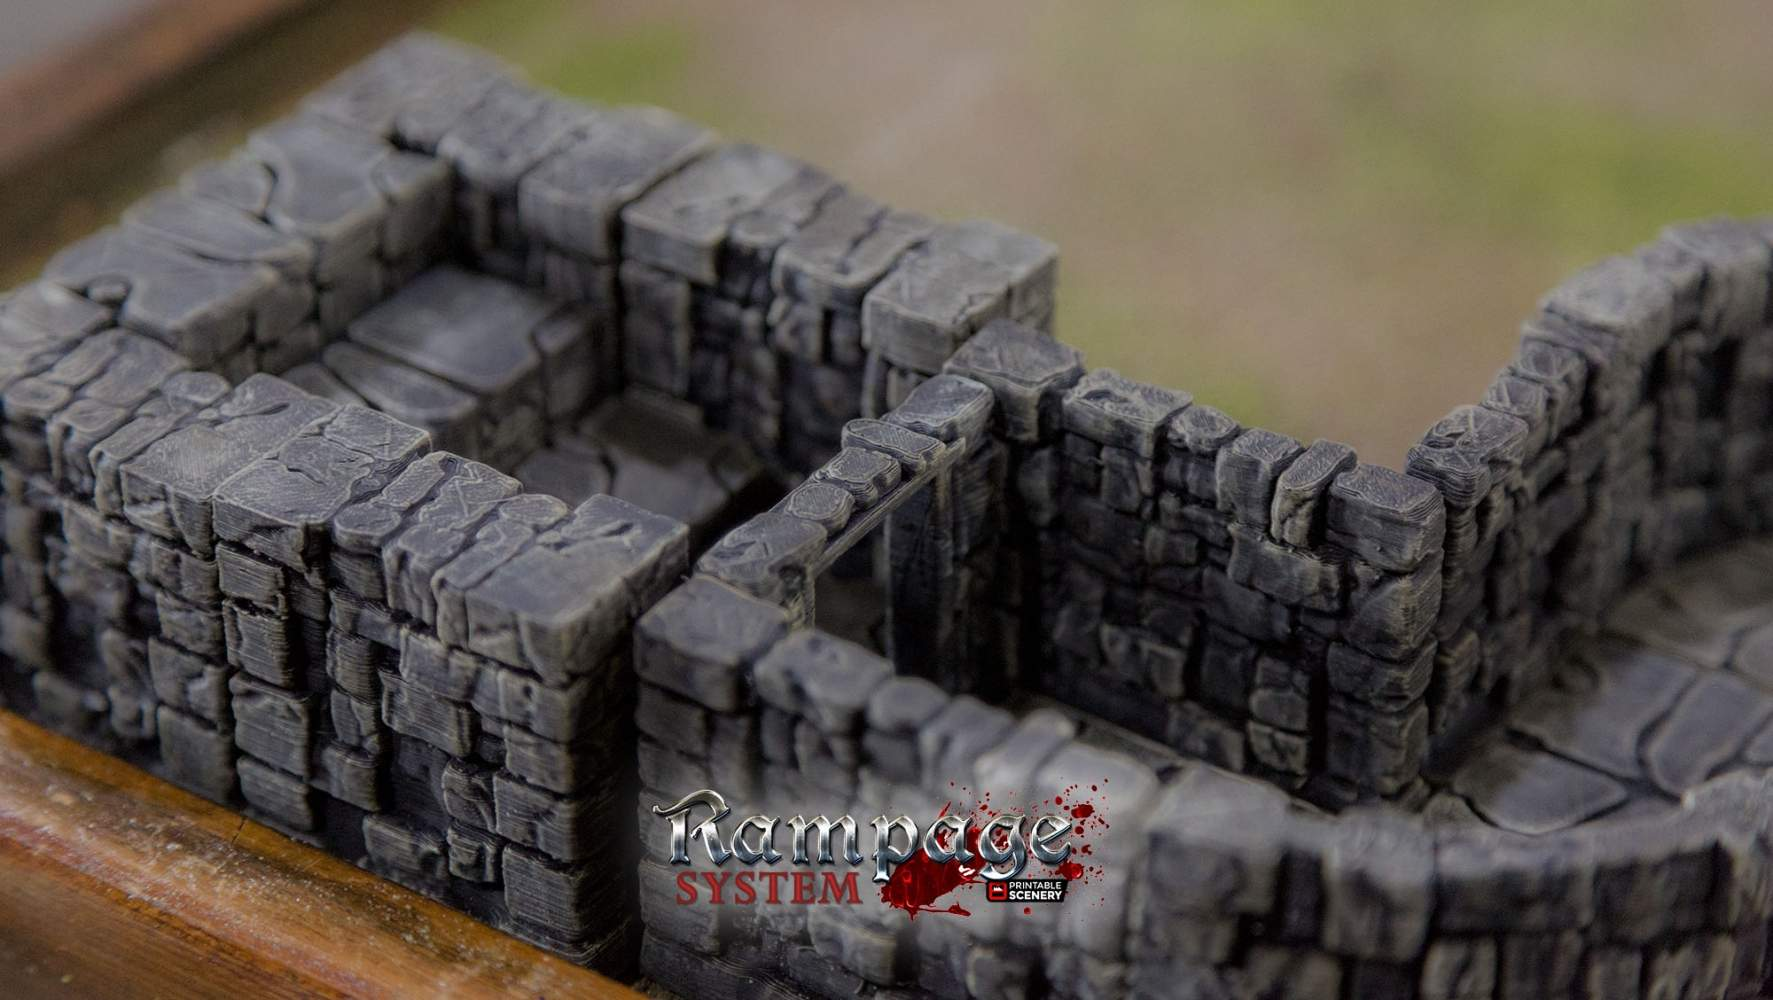 image regarding Printable Dungeon Tiles named Skrimarket